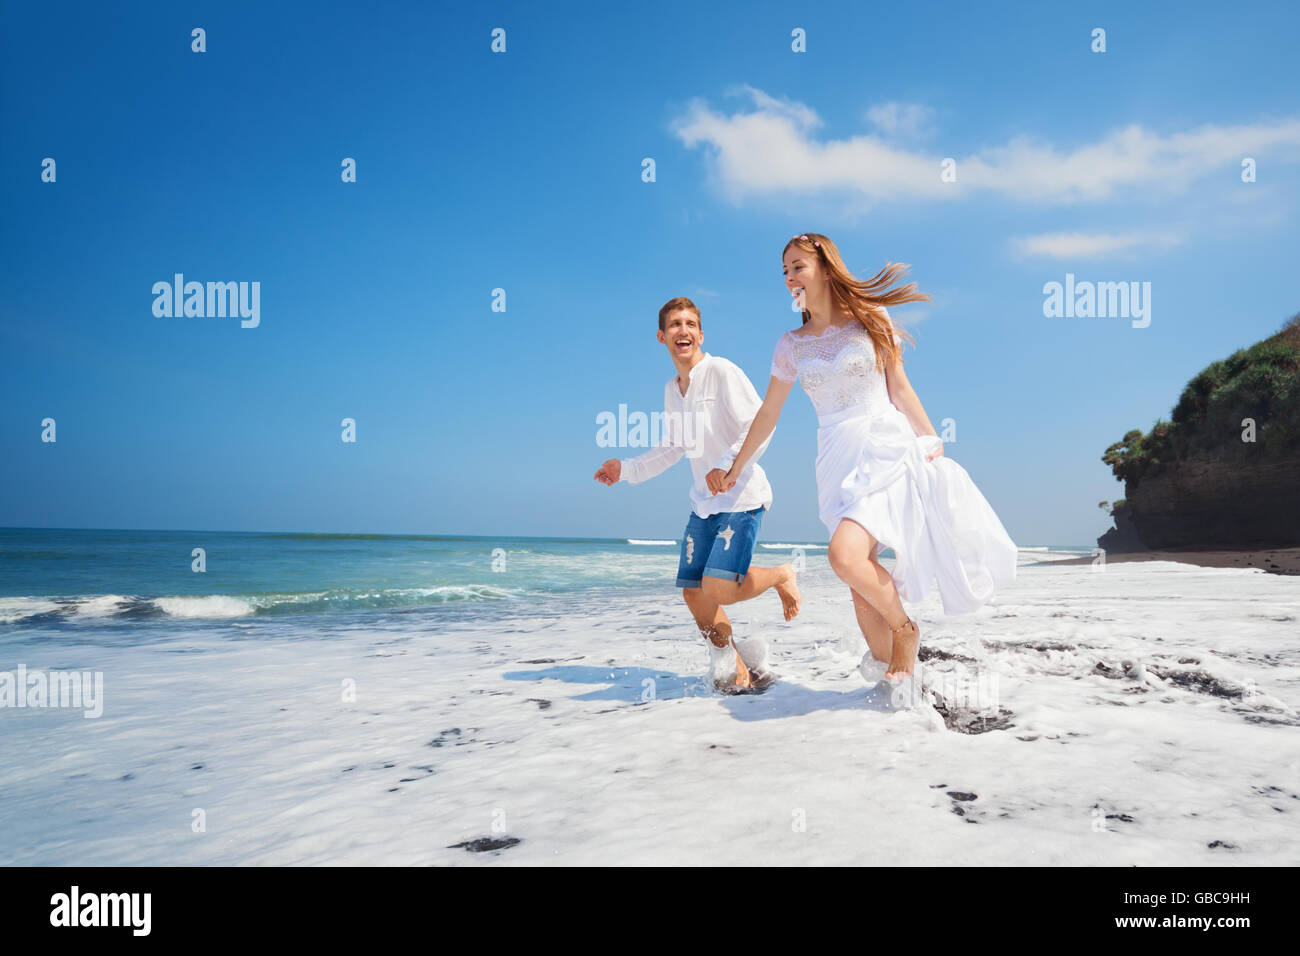 Happy newlywed family on honeymoon holiday - just married loving couple run with fun by black sand beach along sea - Stock Image